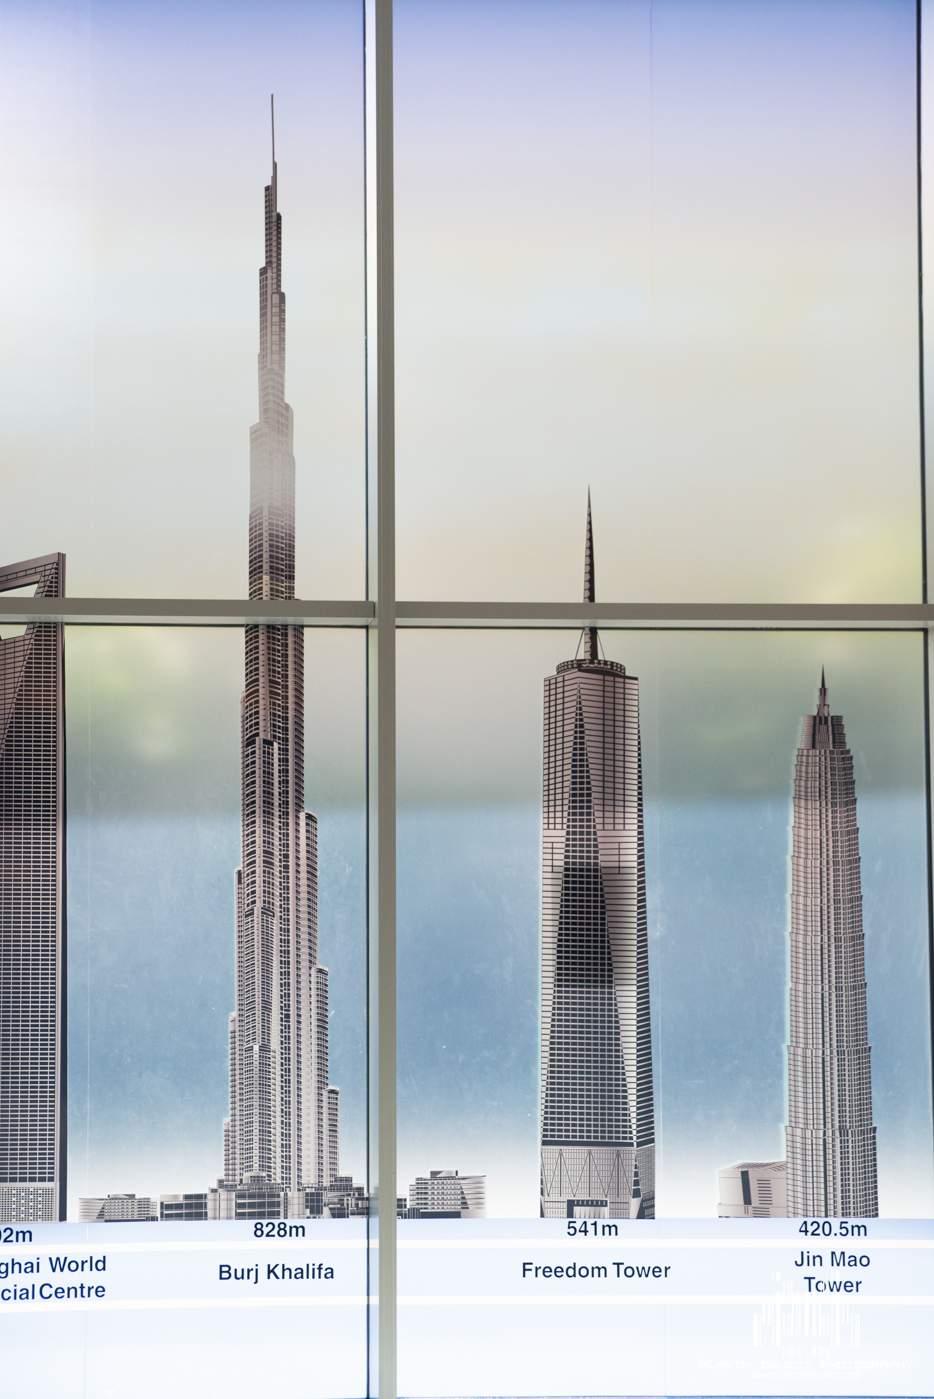 I did find this interesting. The Freedom tower isn't even complete yet and there it is directly beside the Burj Khalifa. This mural was completed almost 3 years ago.